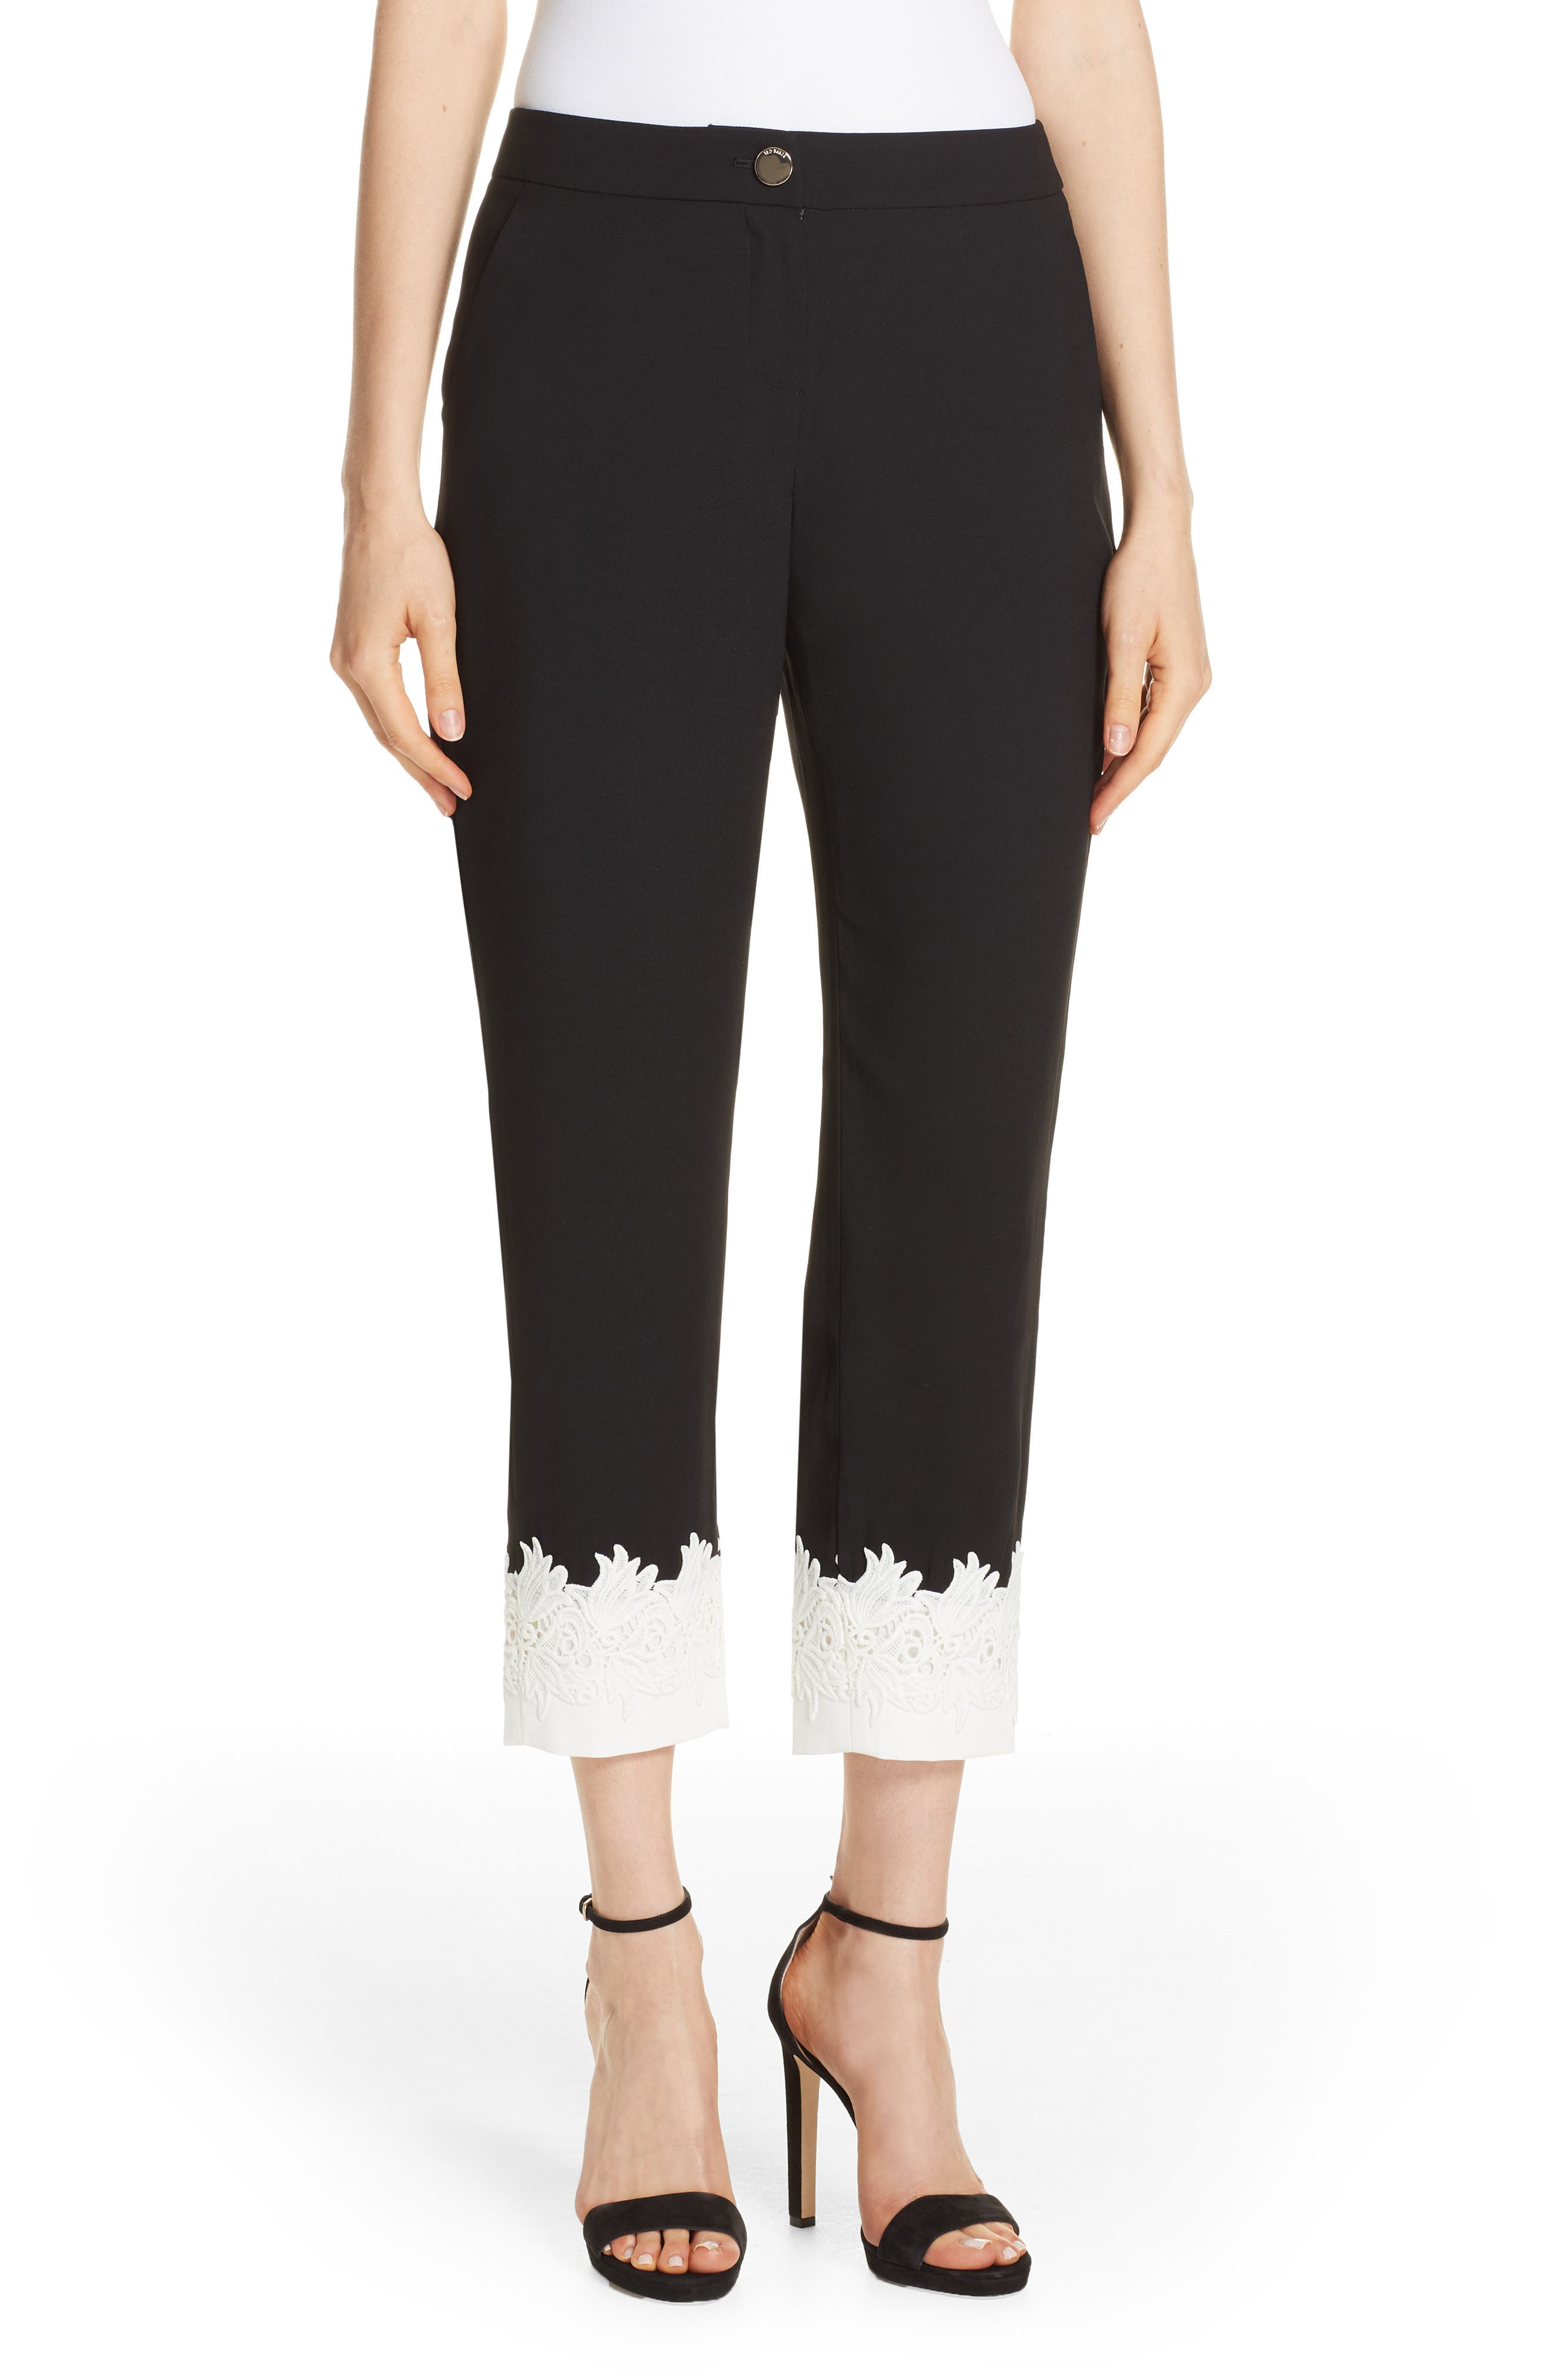 Fancisa Tapered Lace Cuff Pants in Black